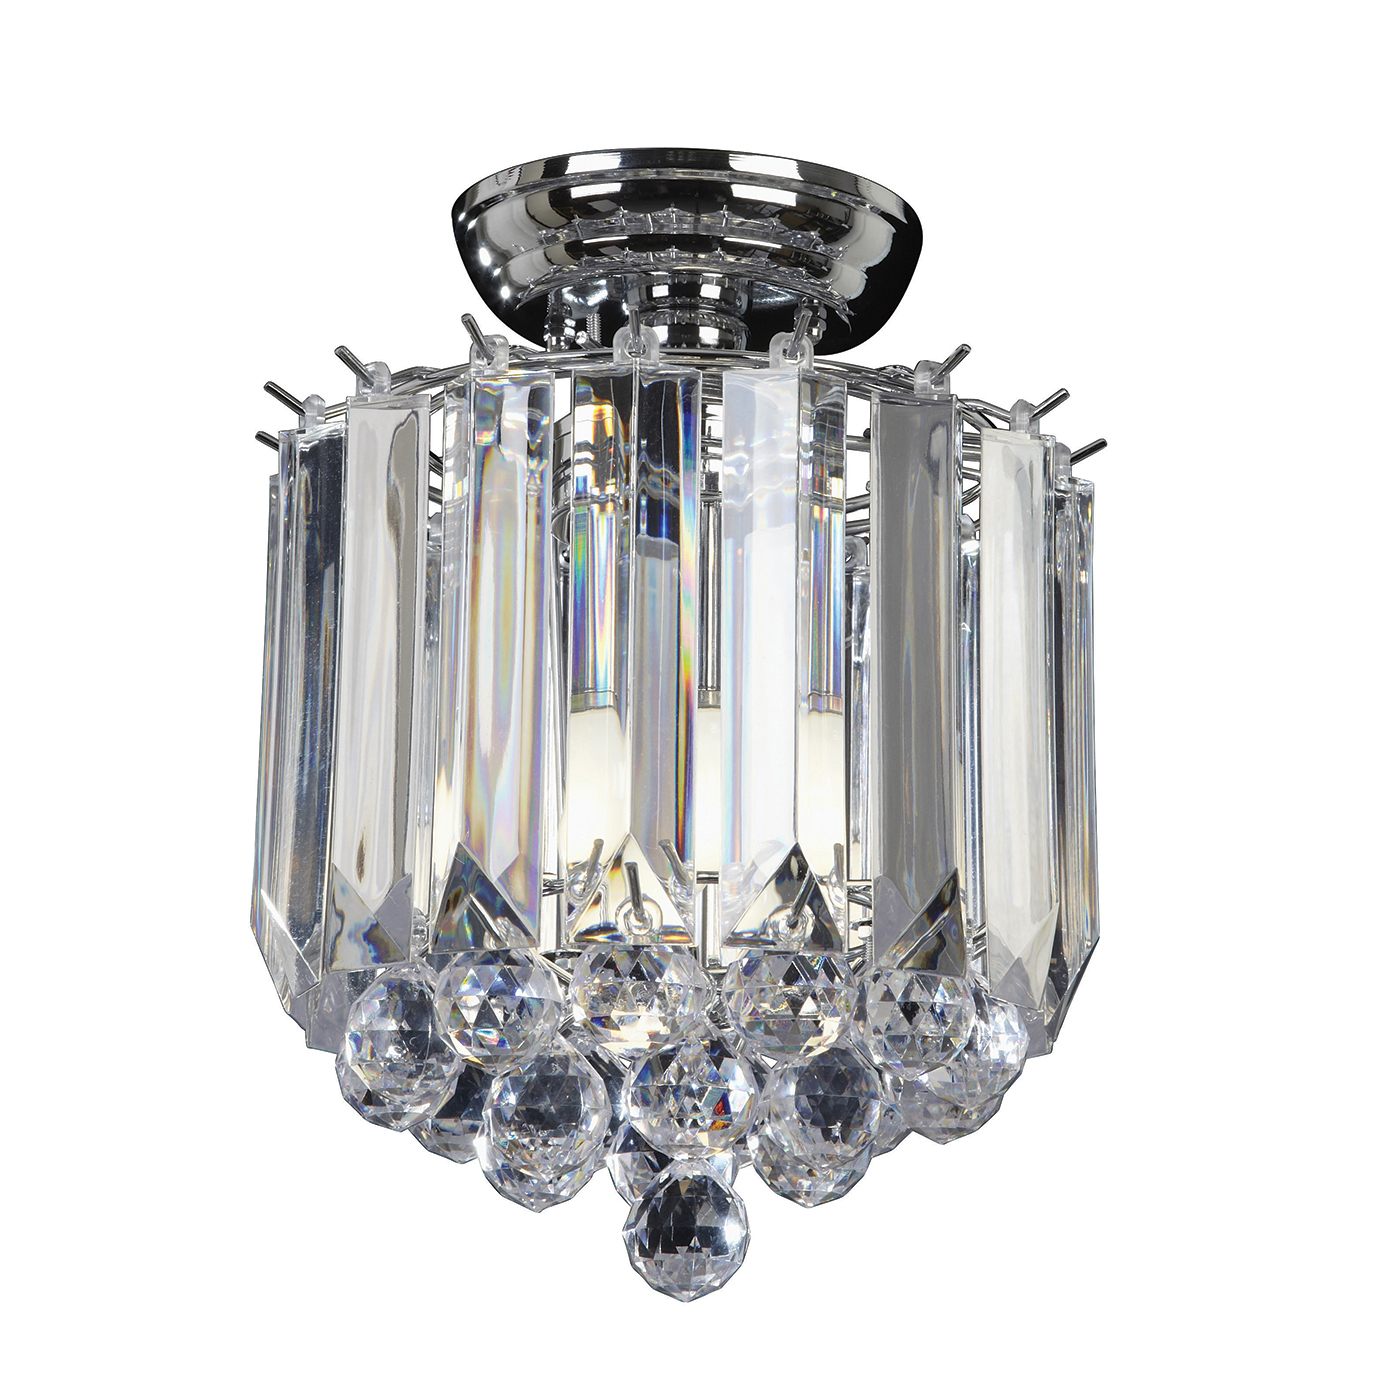 Endon Fargo flush ceiling light 2x 40W Chrome effect plate & clear acrylic